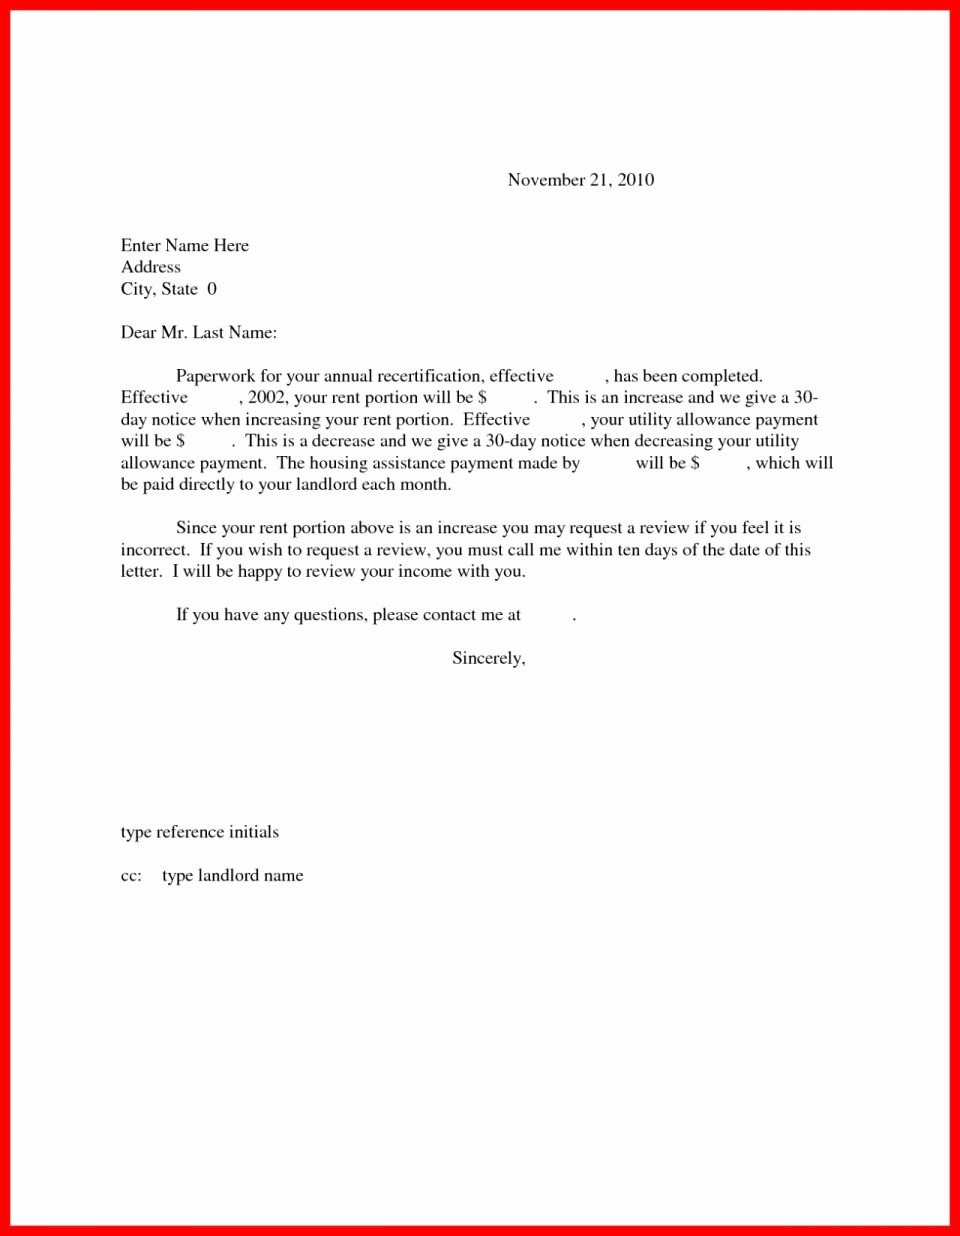 Rent Increase Notice Template Melo In Tandem Co Letter for